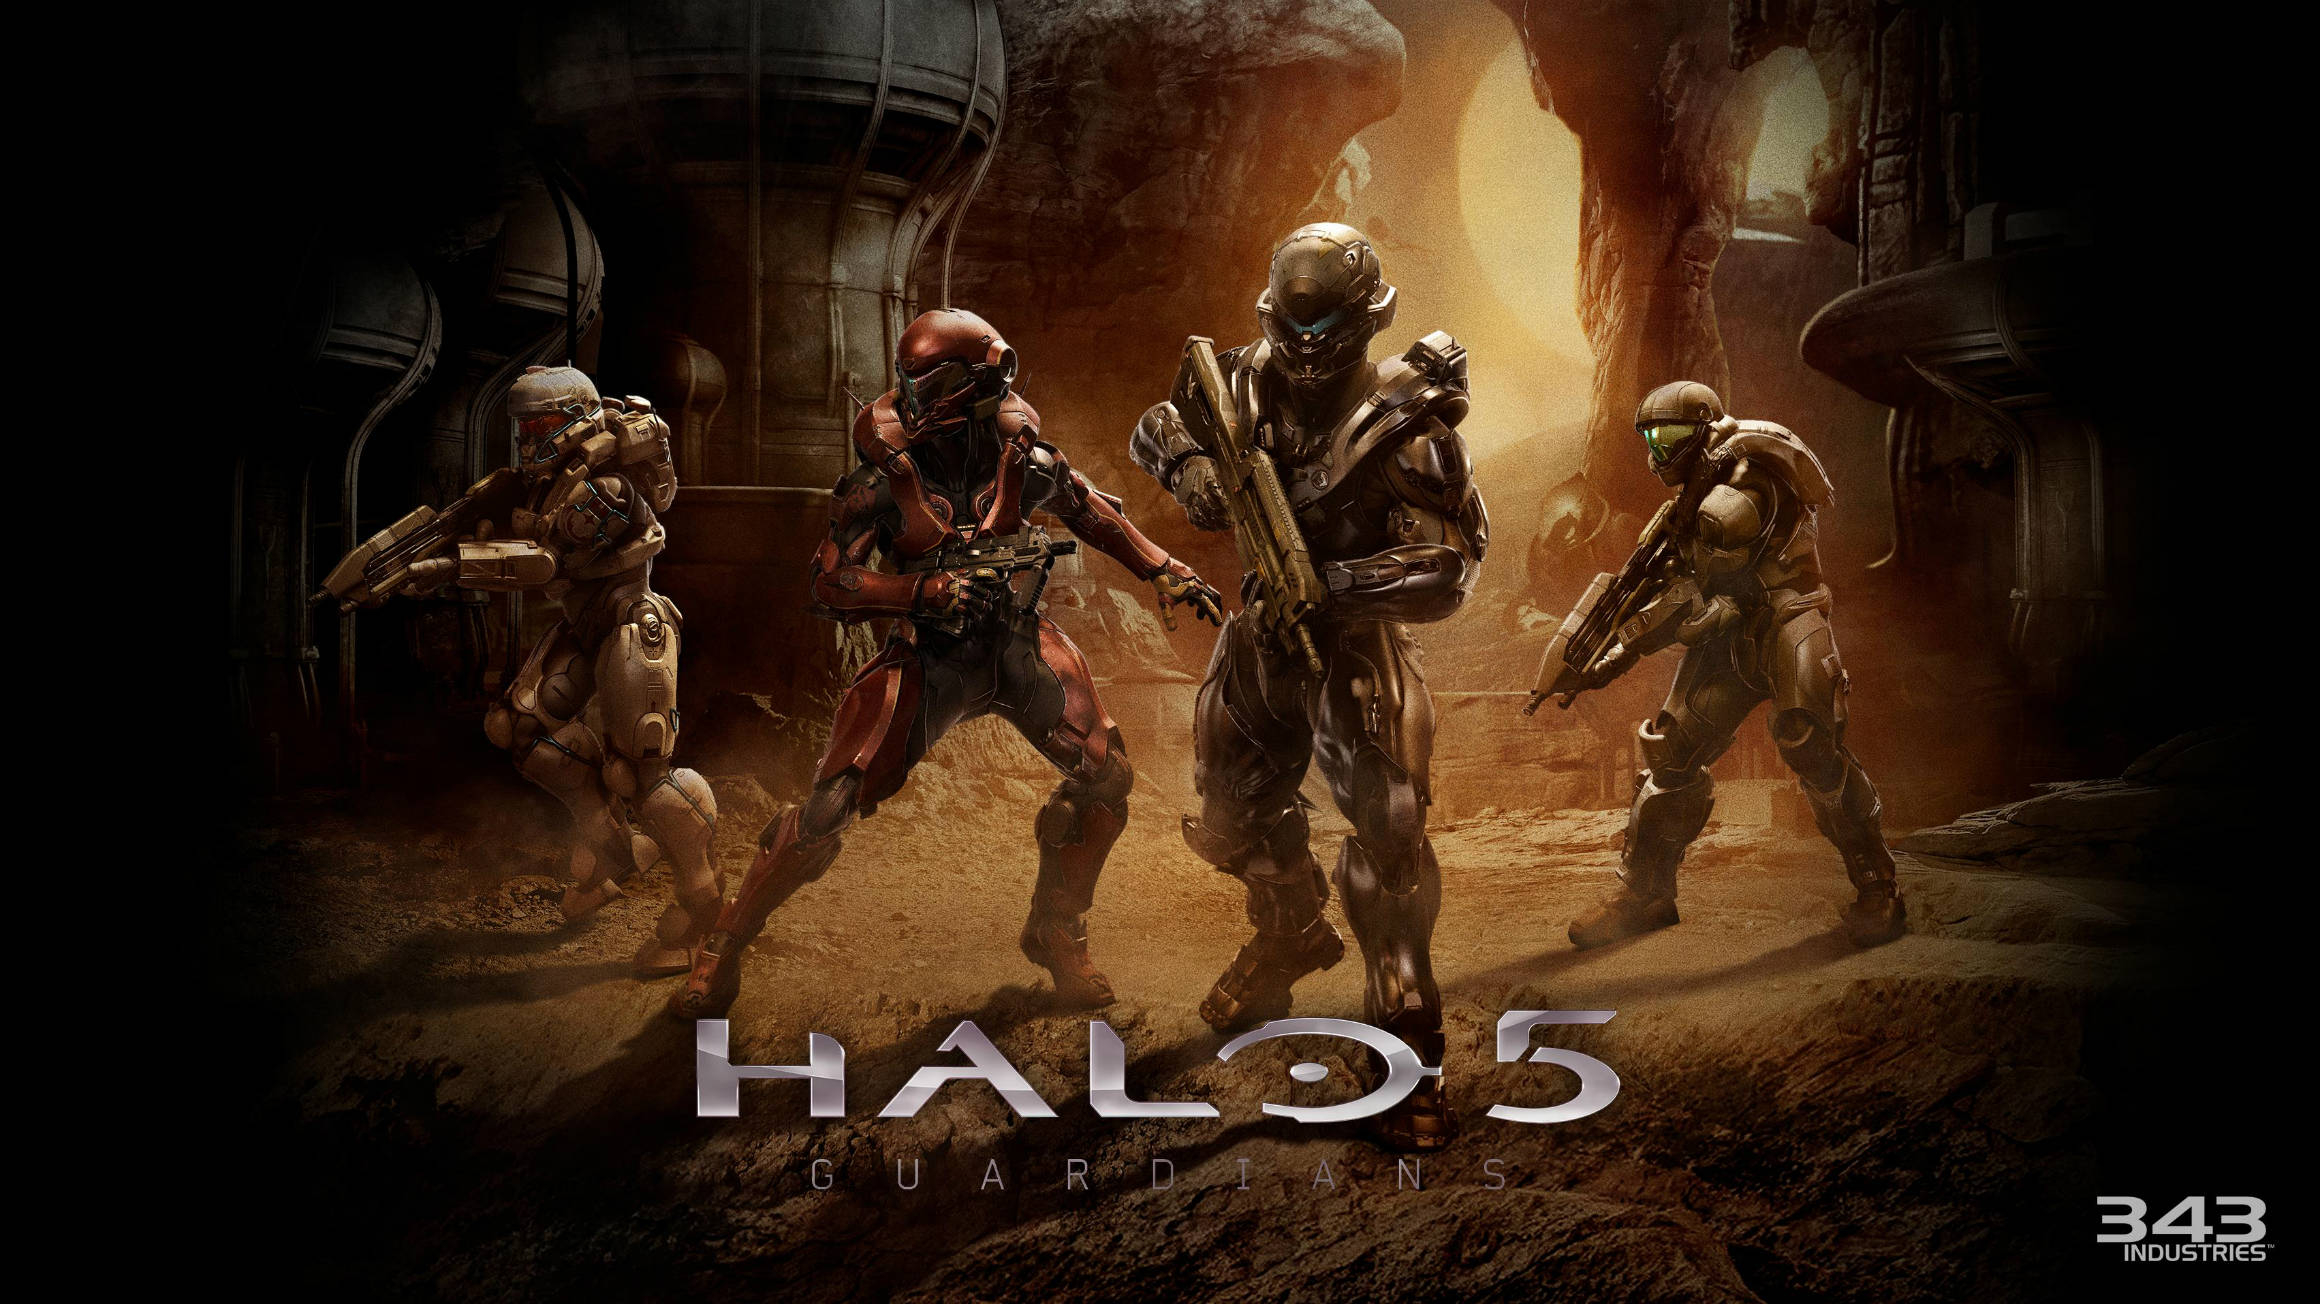 Halo Guardians story shows Master Chief at his most vulnerable